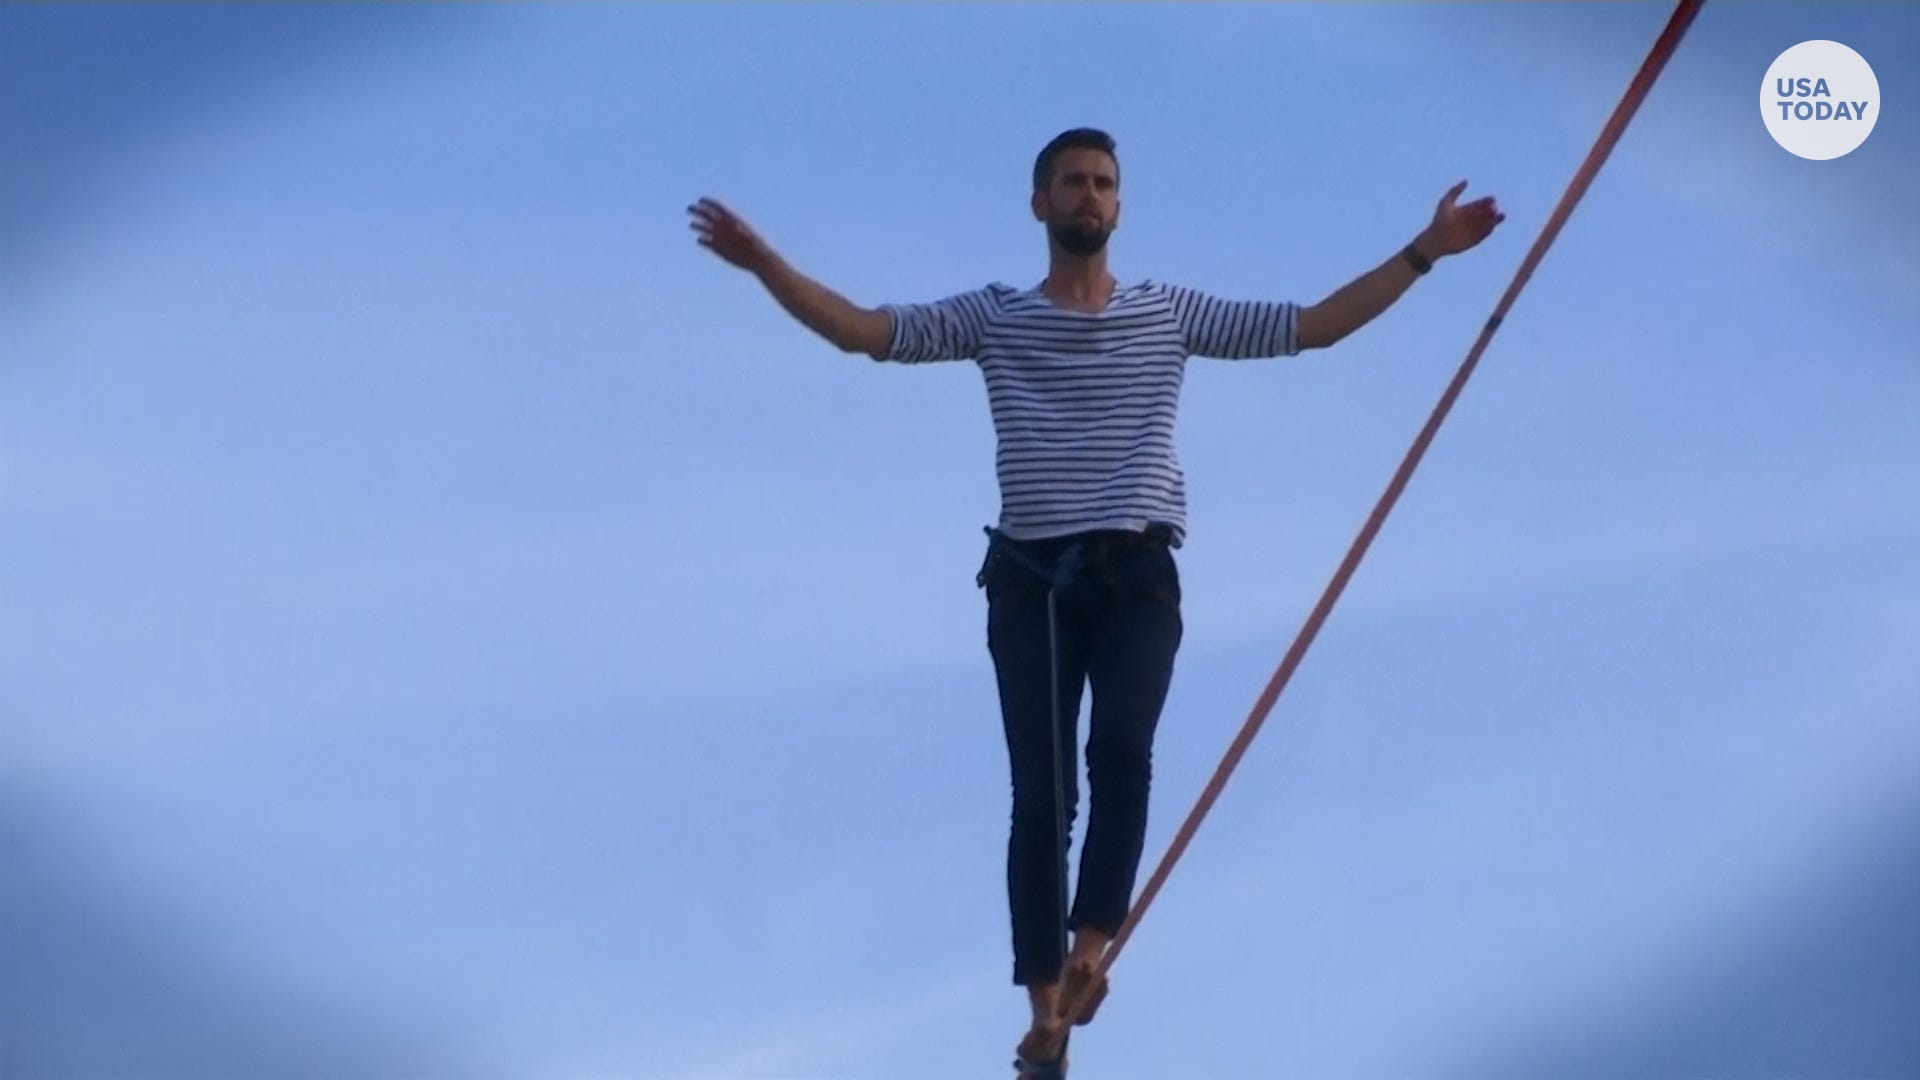 Don t look down: Tightrope walker completes 2,198-foot walk from Eiffel Tower